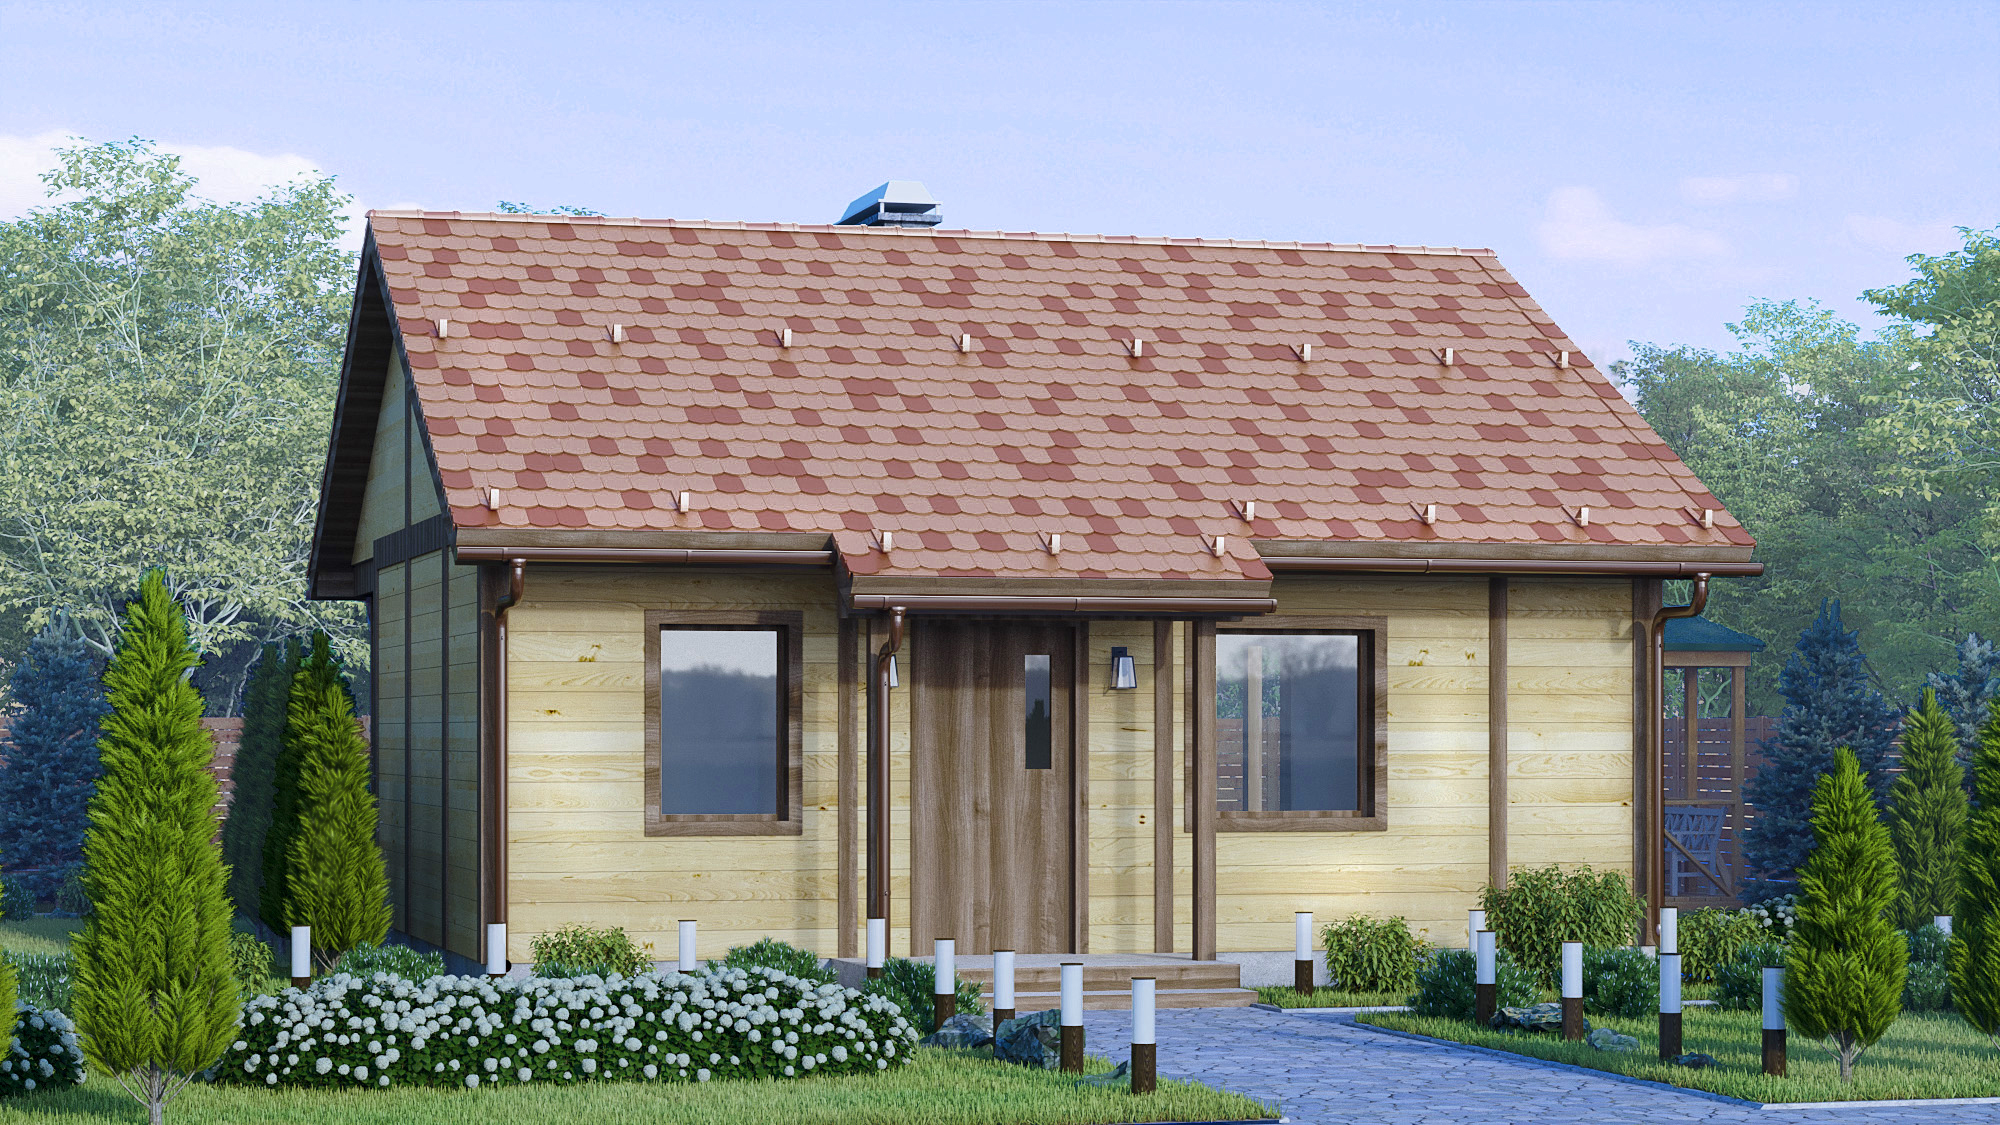 Visualization of a country house. in 3d max corona render image